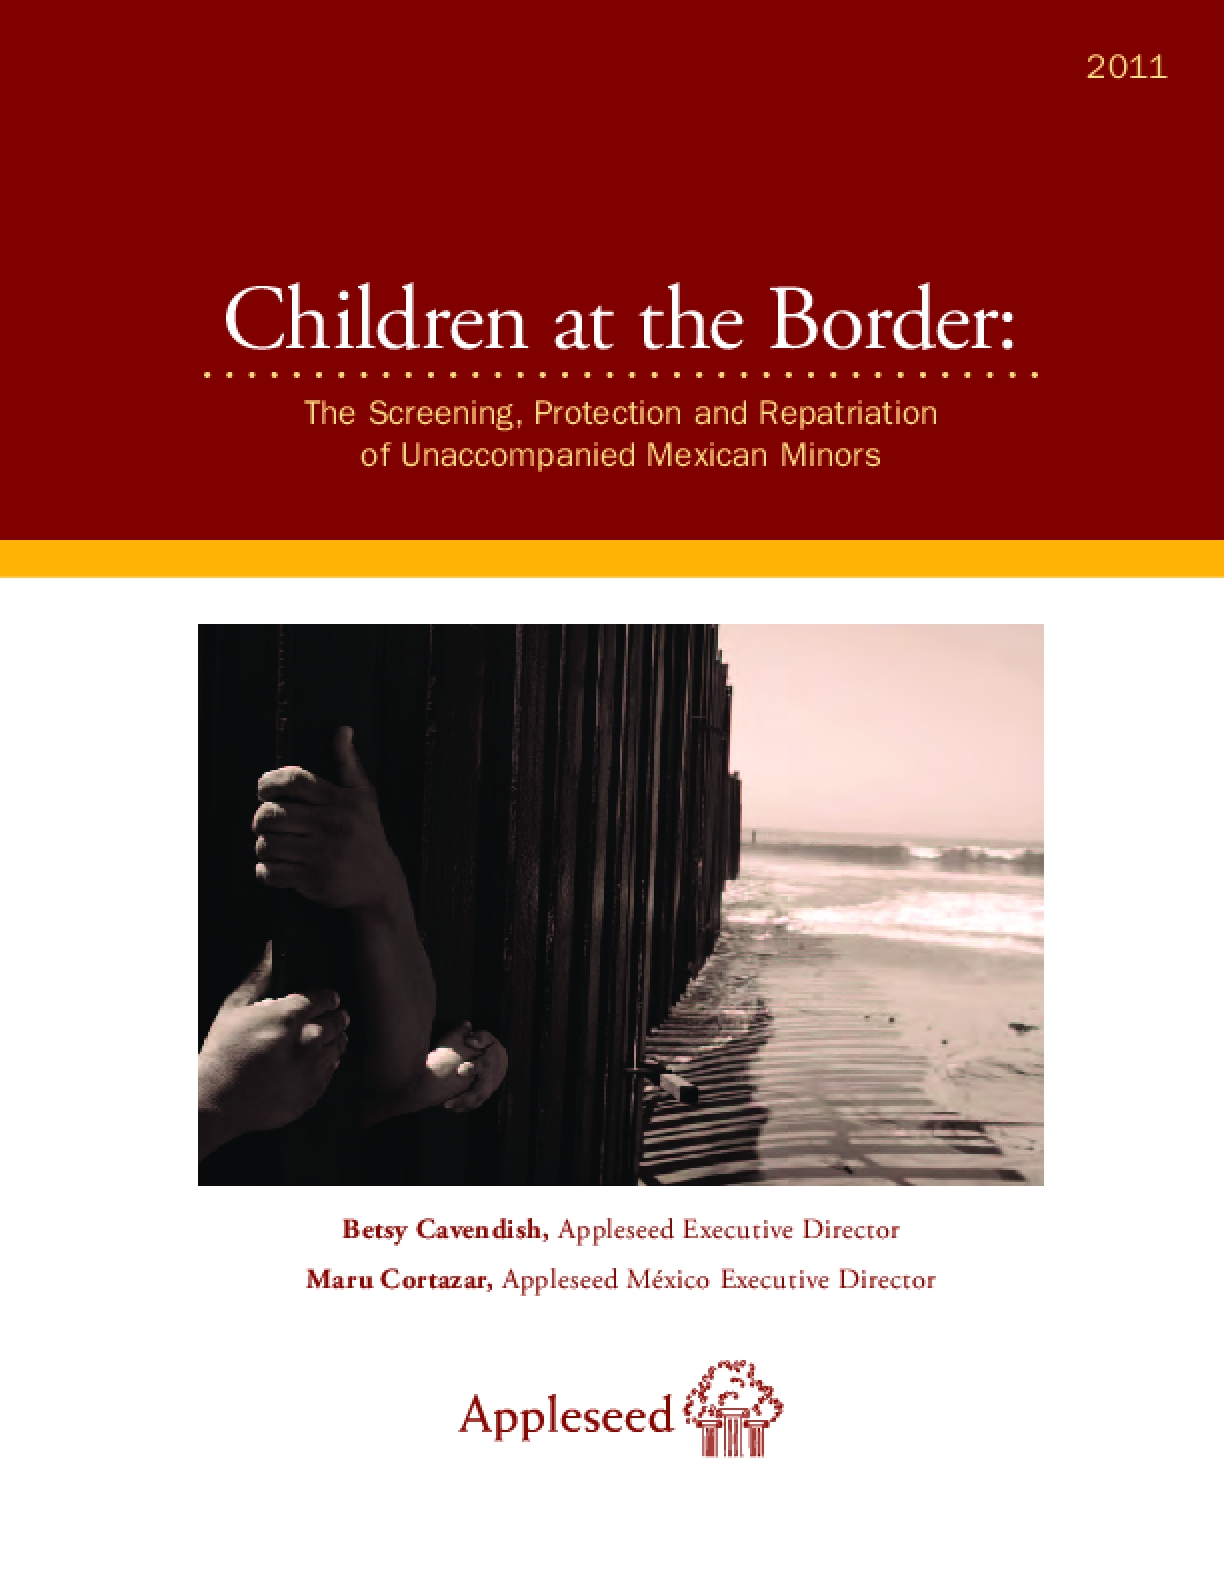 Children At The Border: The Screening, Protection and Repatriation of Unaccompanied Mexican Minors